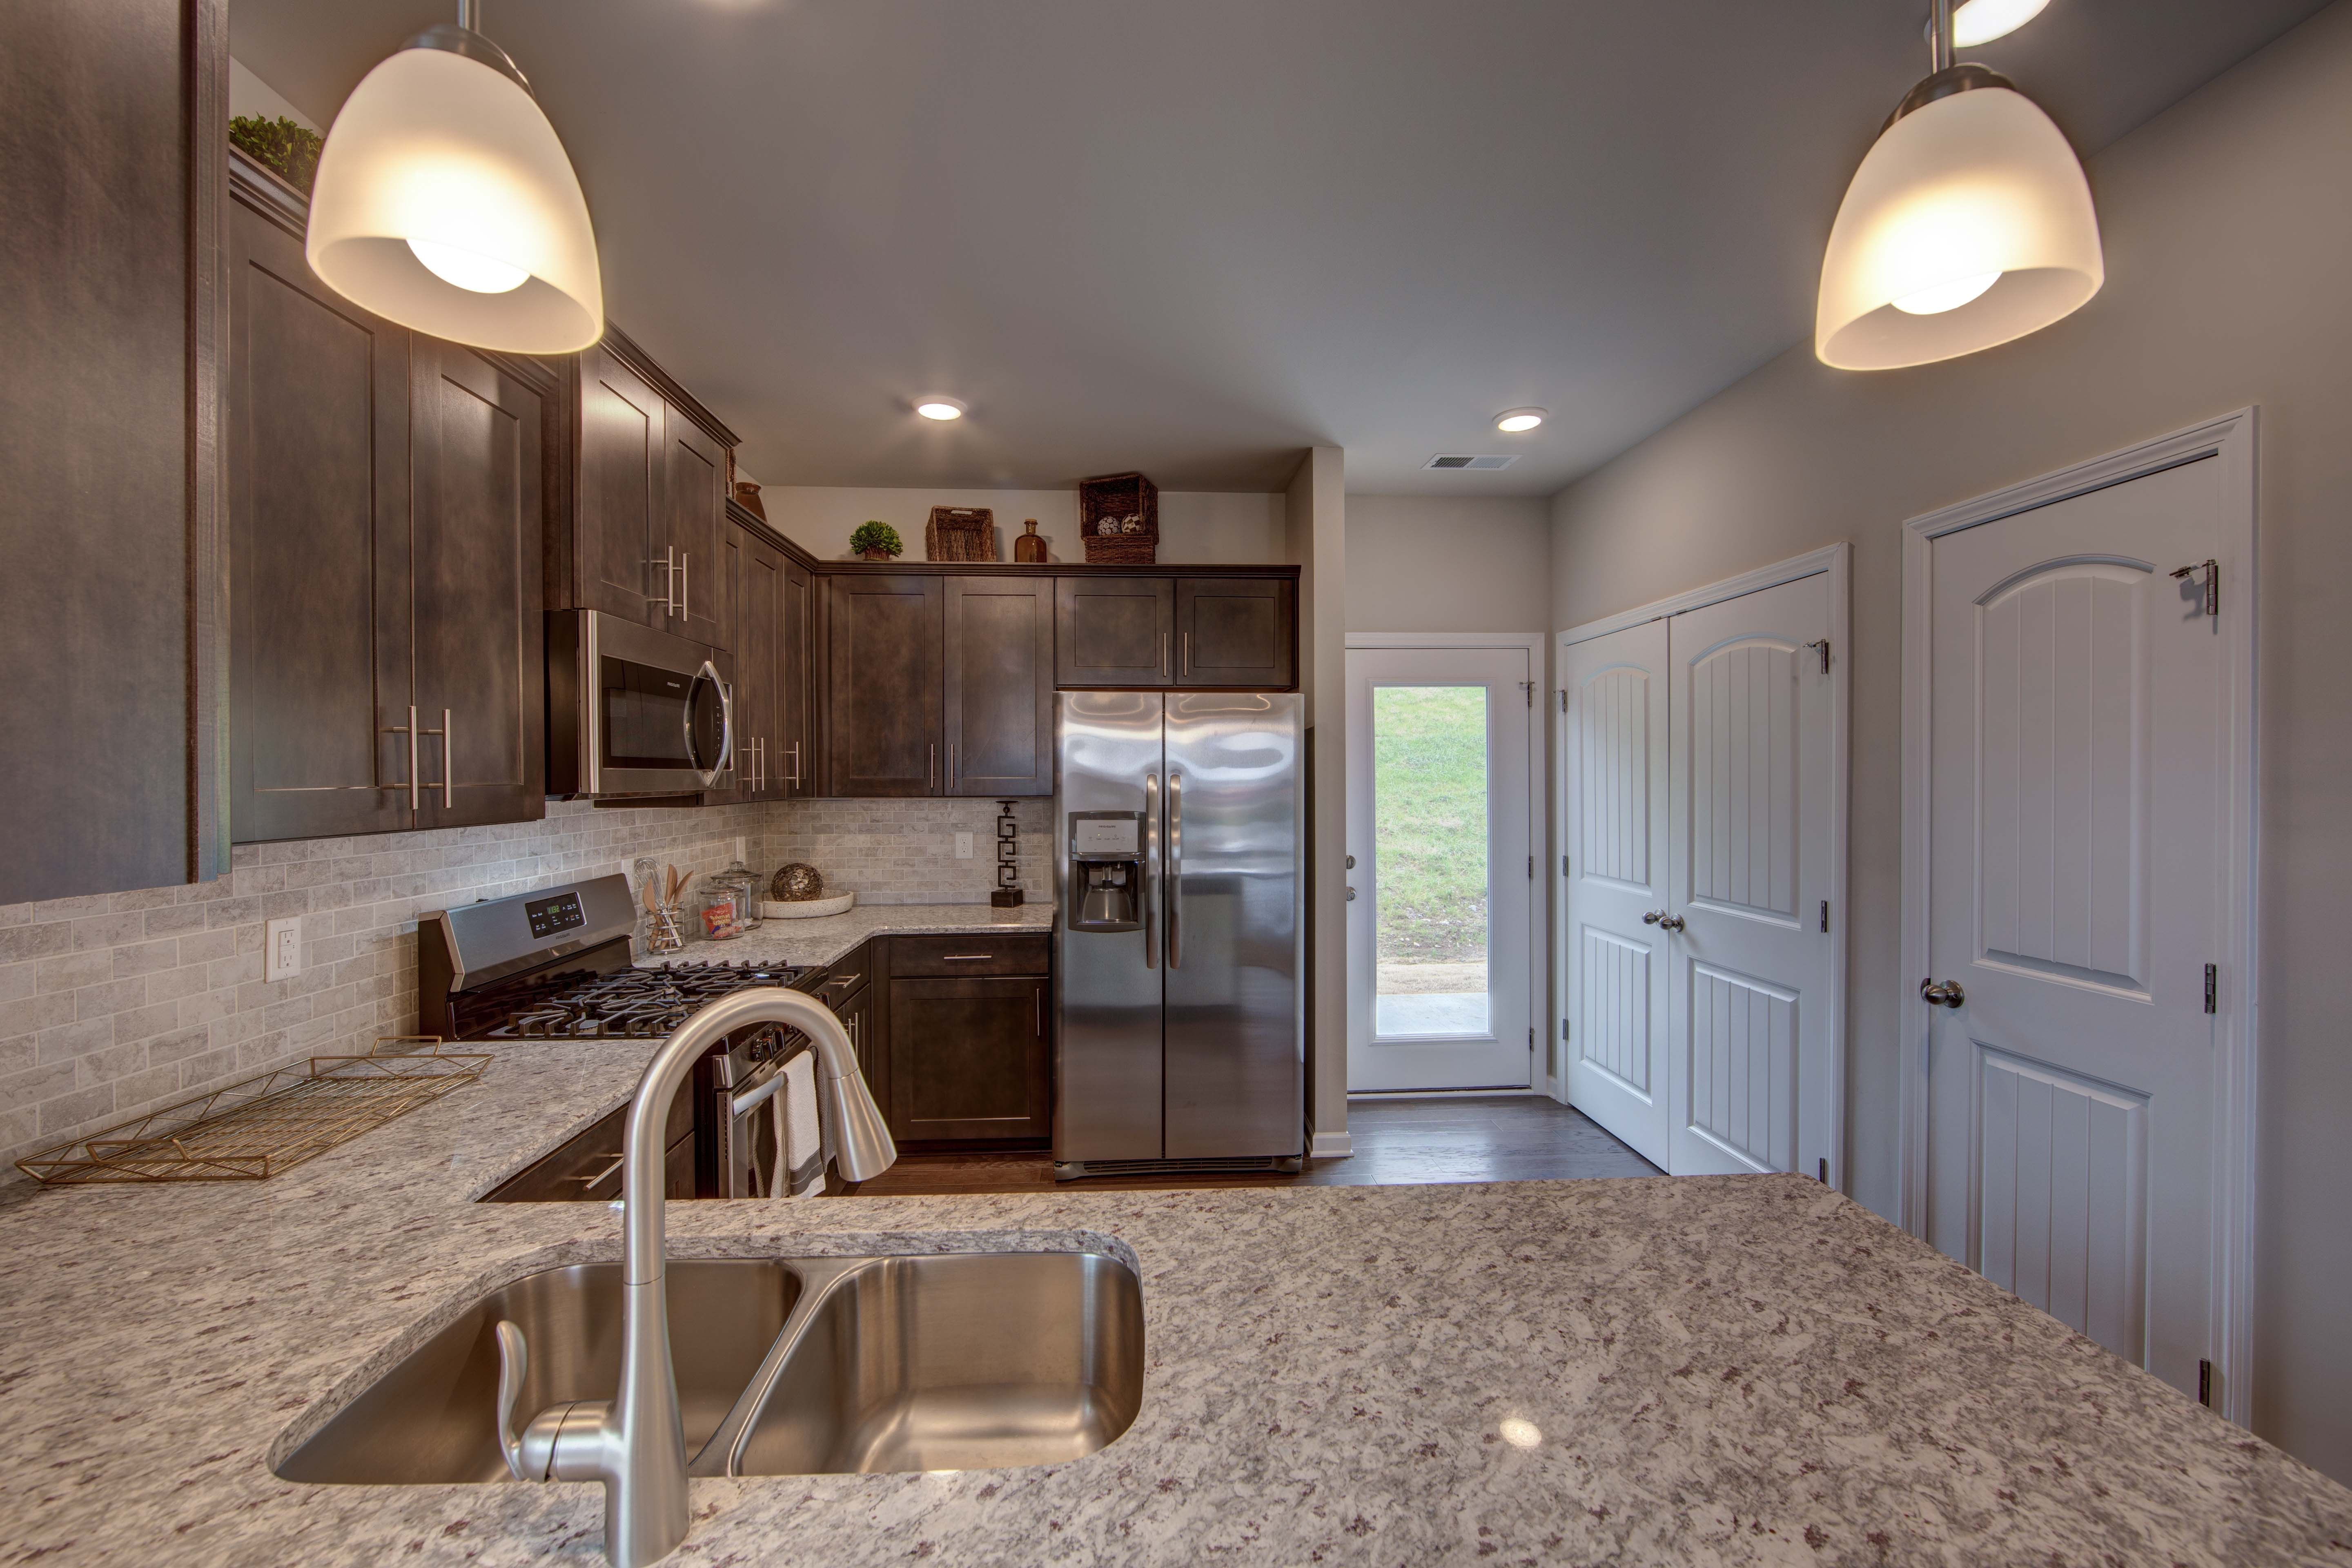 Kitchen featured in the Owens II By D.R. Horton in Nashville, TN